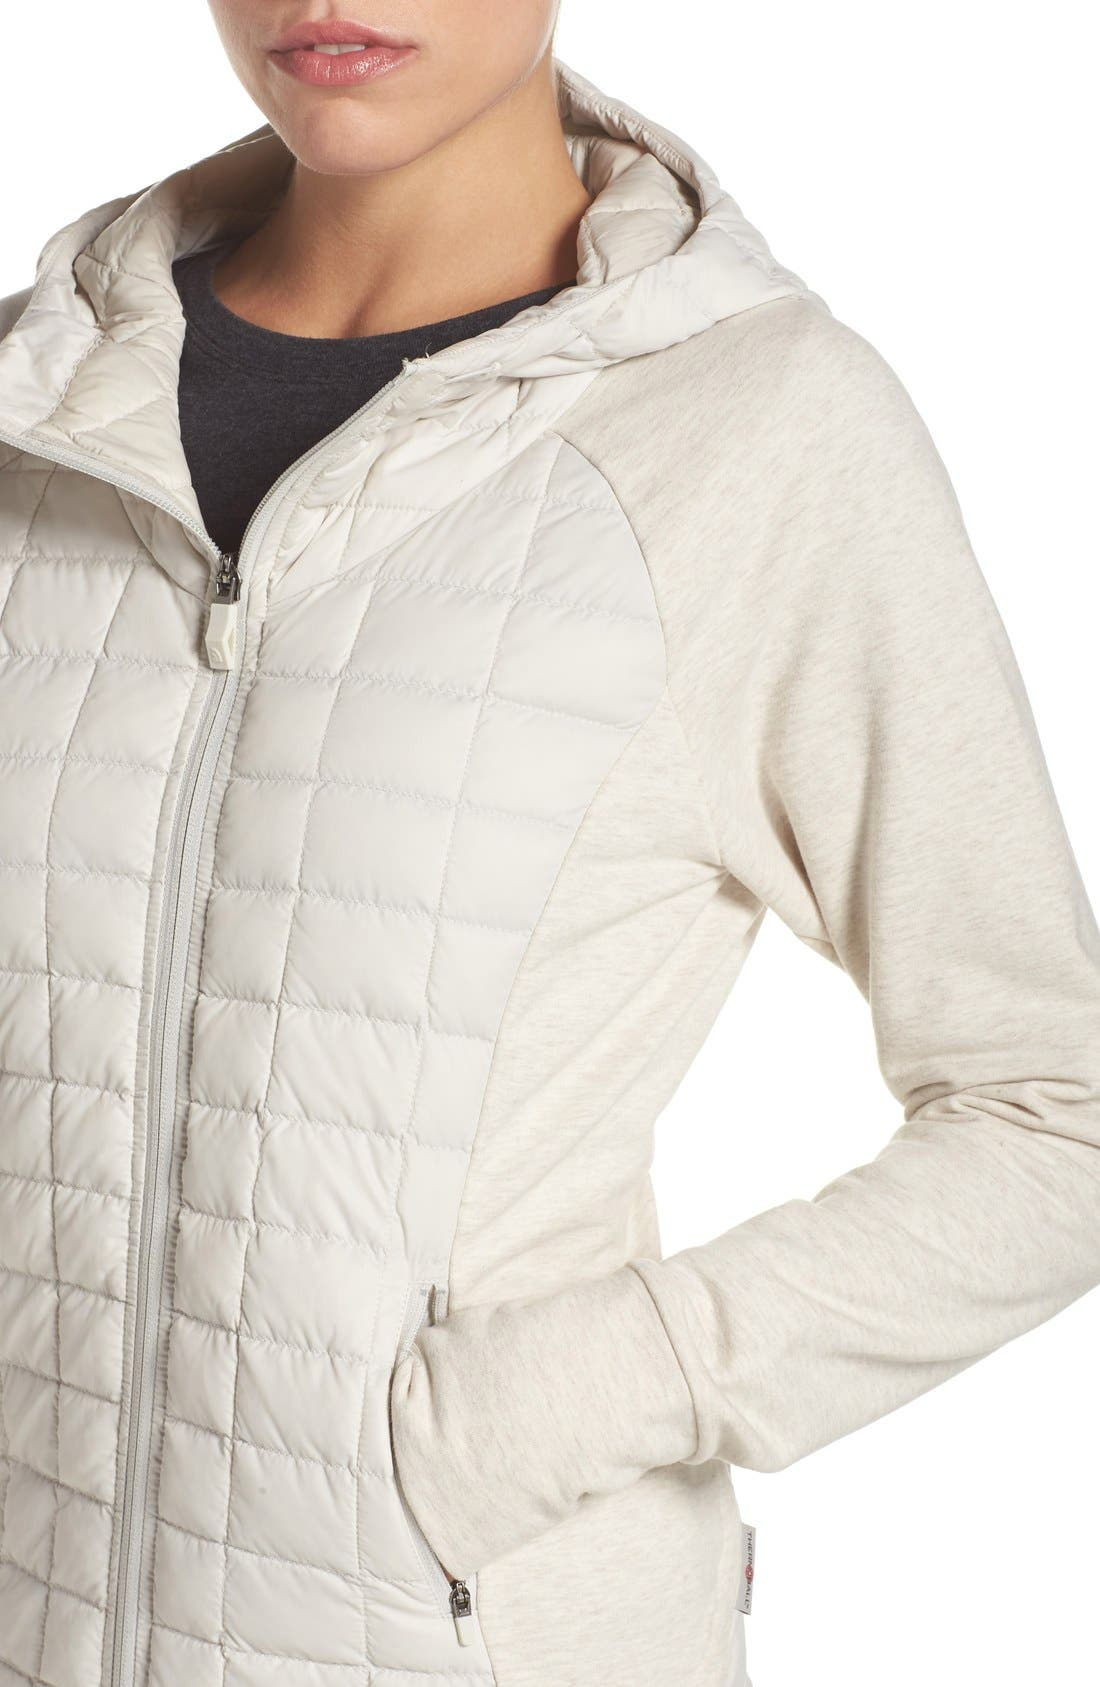 'Endeavor' ThermoBall PrimaLoft<sup>®</sup> Quilted Jacket,                             Alternate thumbnail 4, color,                             Moonlight Ivory/ Ivory White